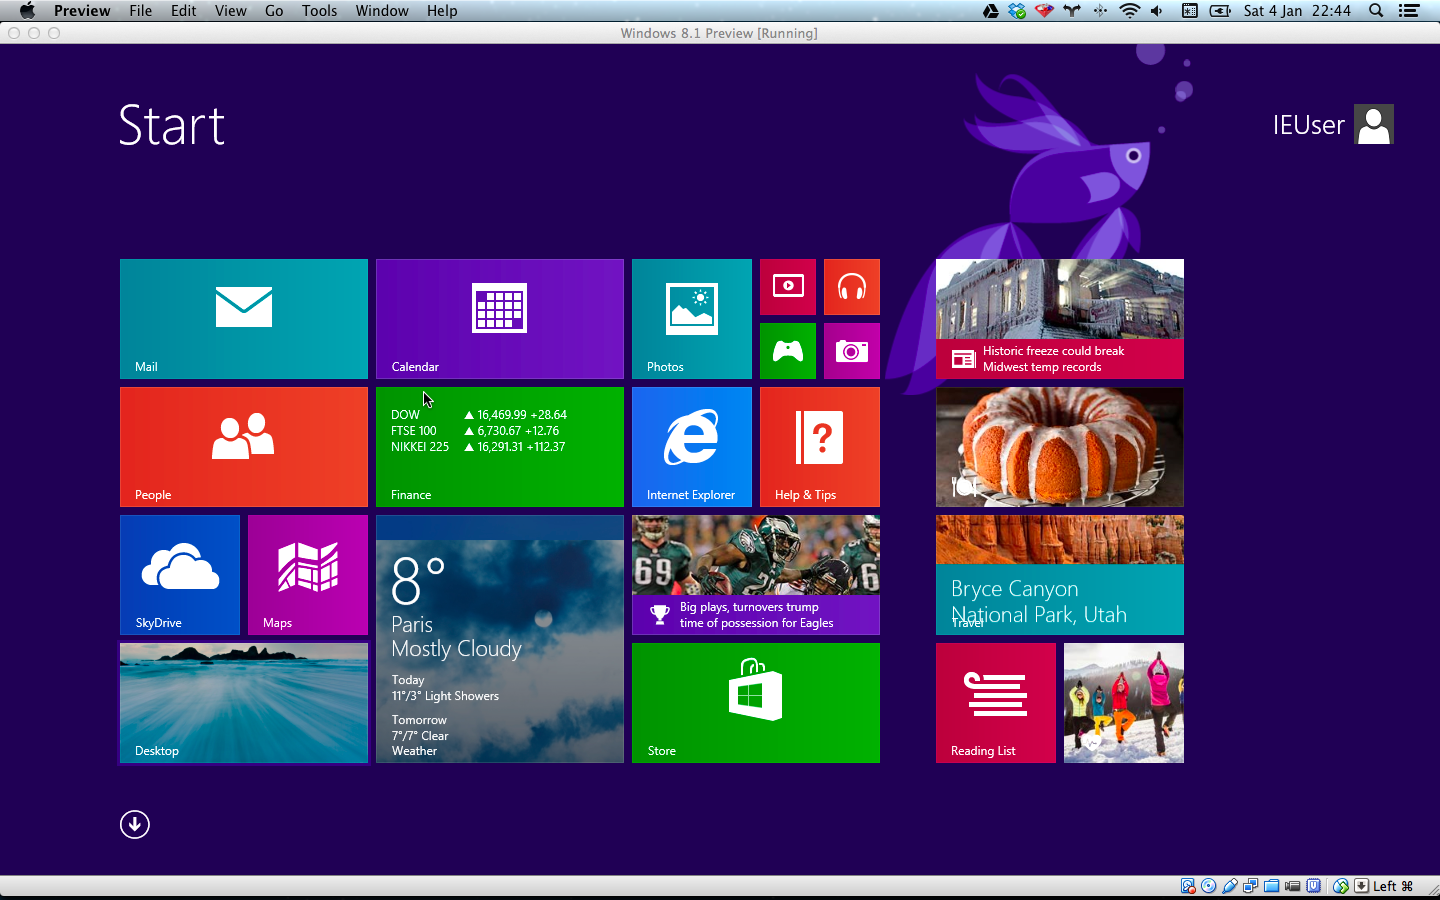 Windows 8.1 default desktop